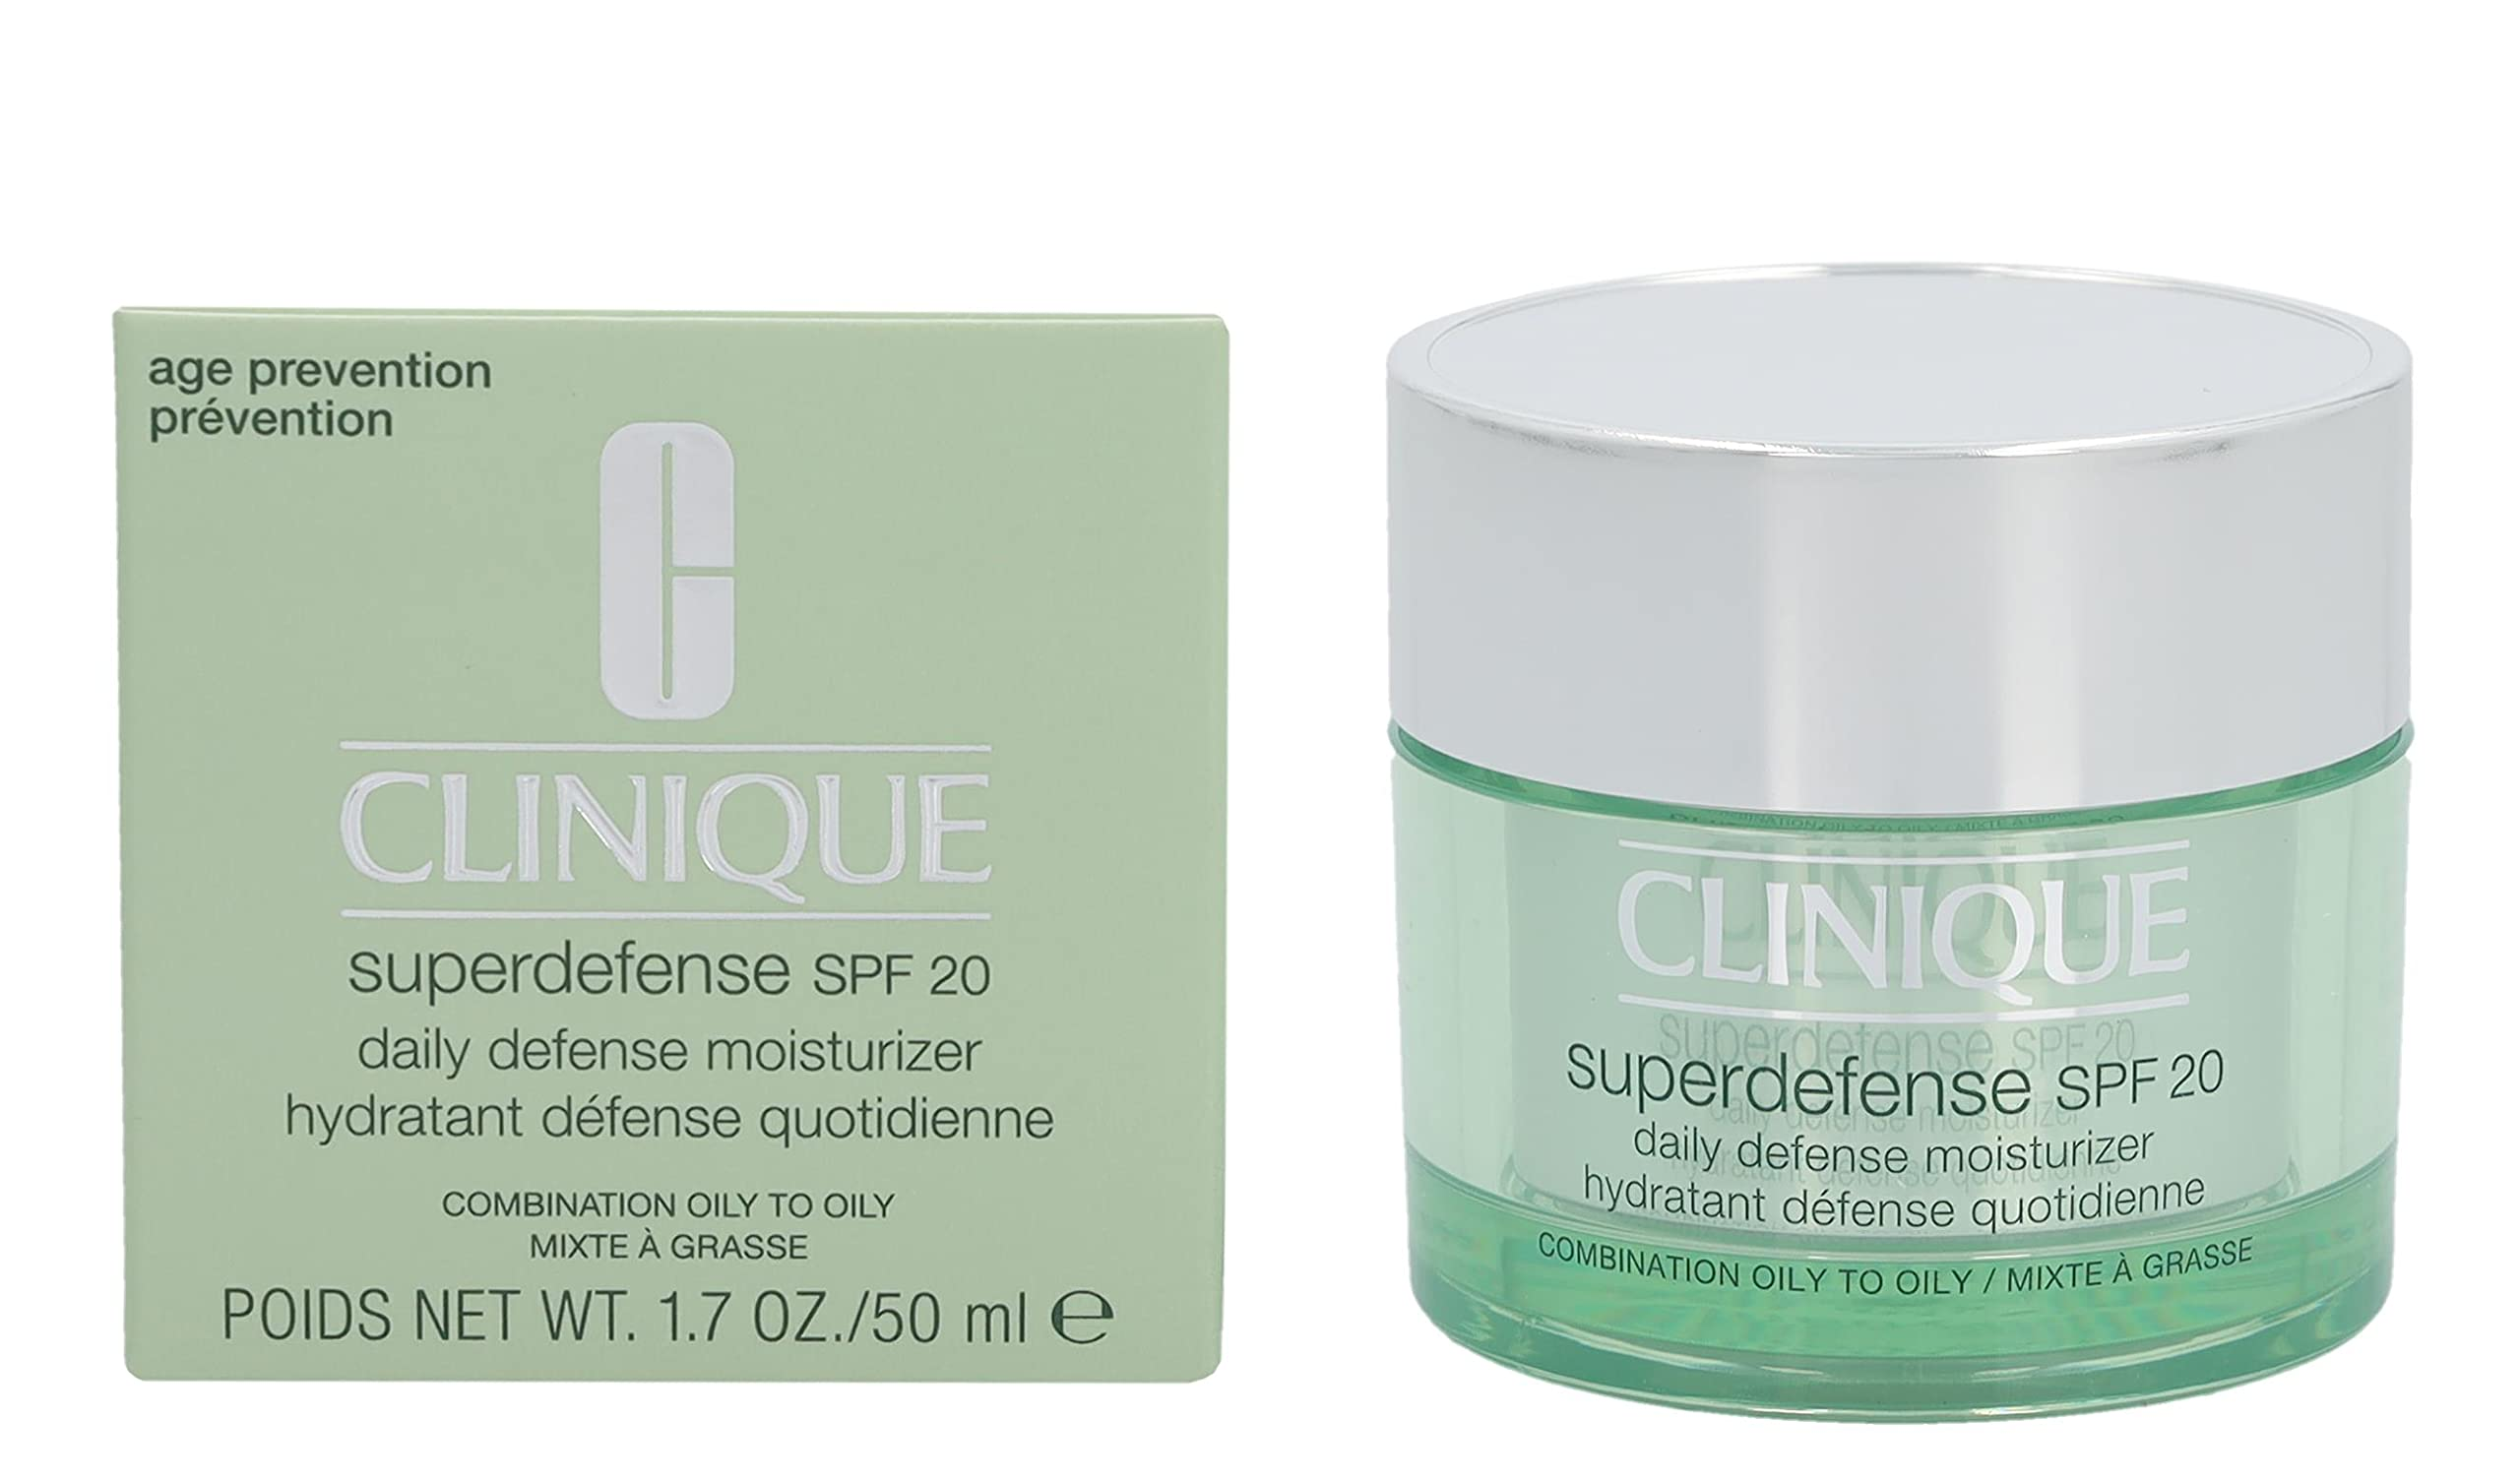 Clinique Superdefense Daily Defense Moisturizer Broad Spectrum SPF 20 Combination Oily to Oily 1.7 Ounce